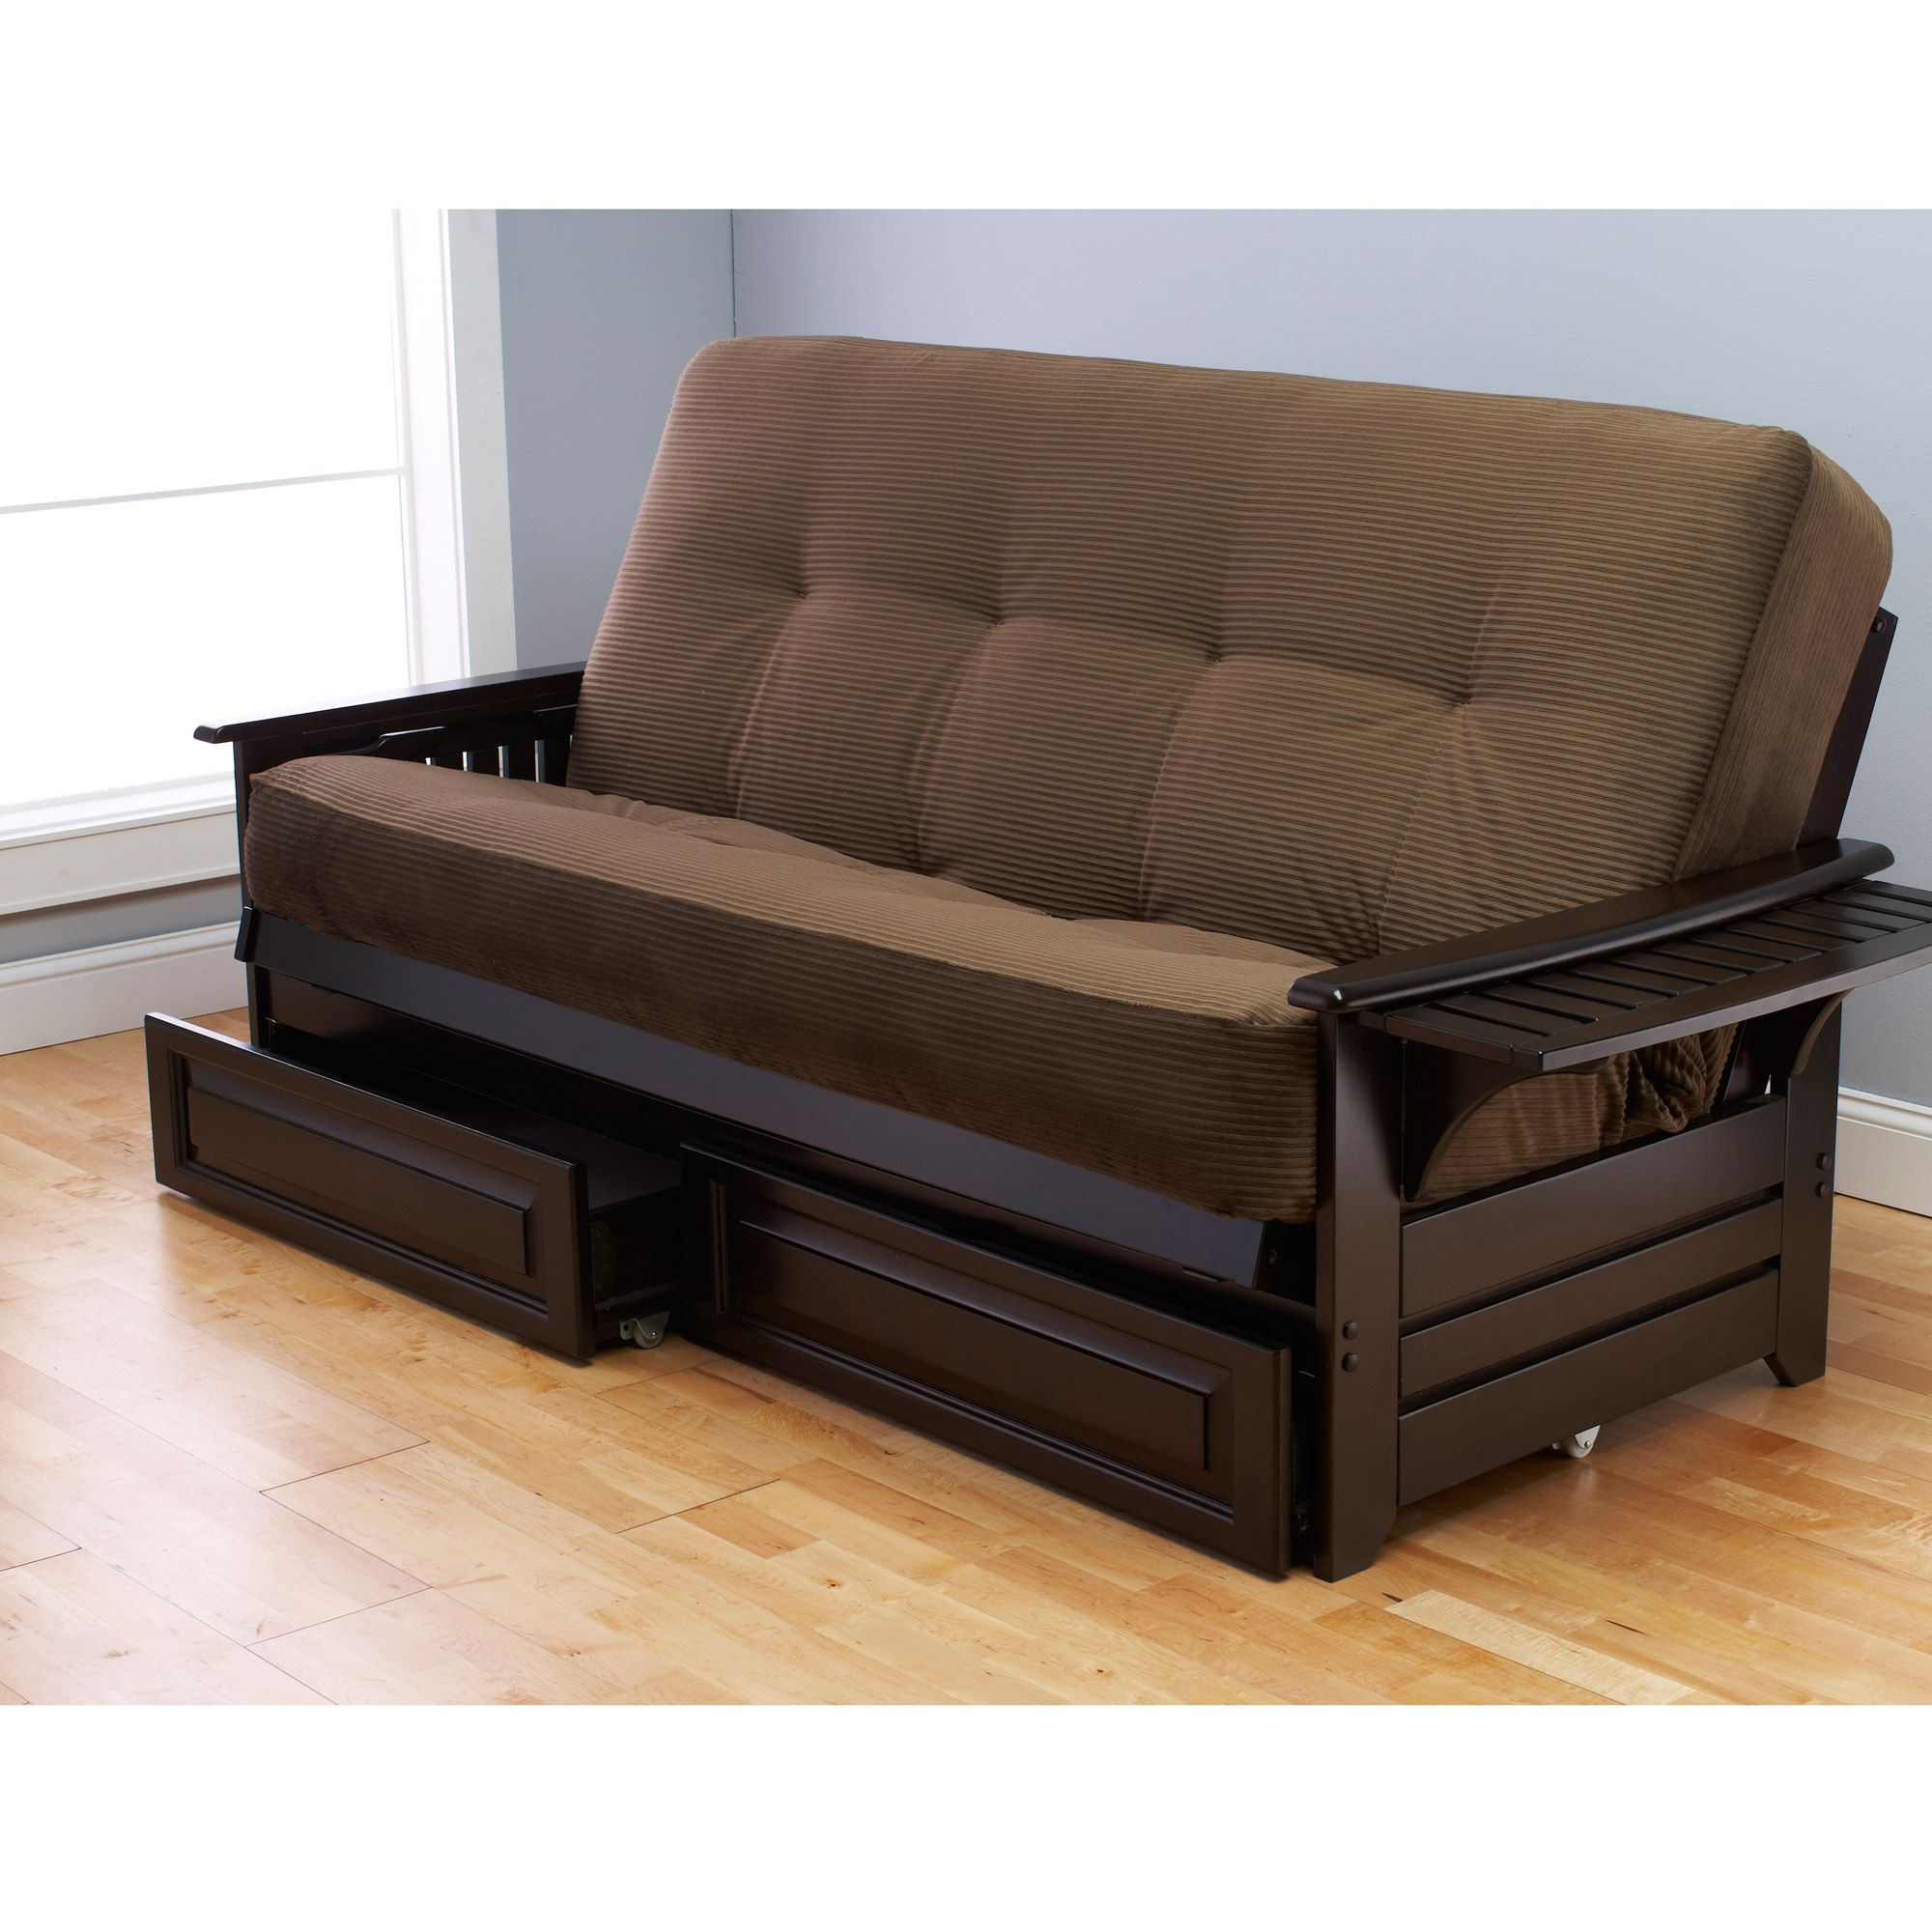 by id ls name category loveseat casamode page index futon product snd convertible chain armada sand